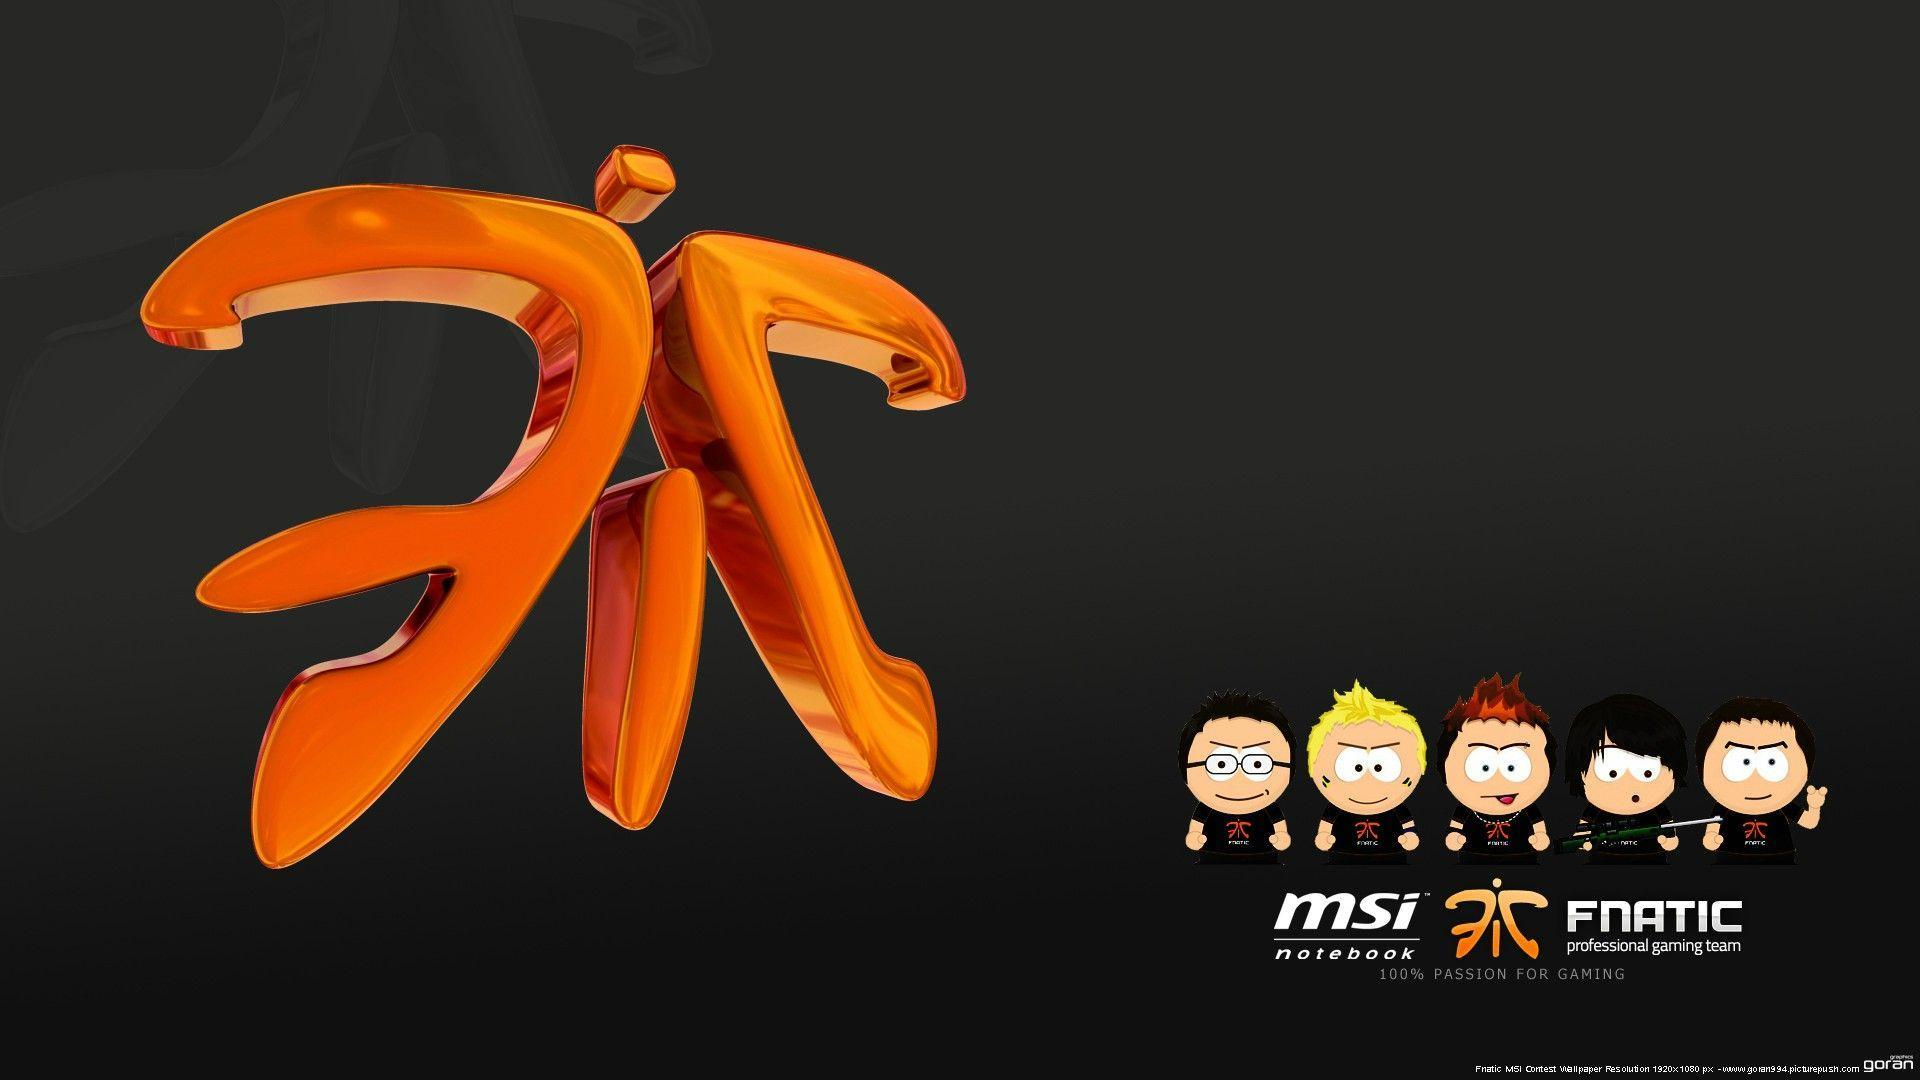 FNATIC: Winners of MSI Wallpapers Competition